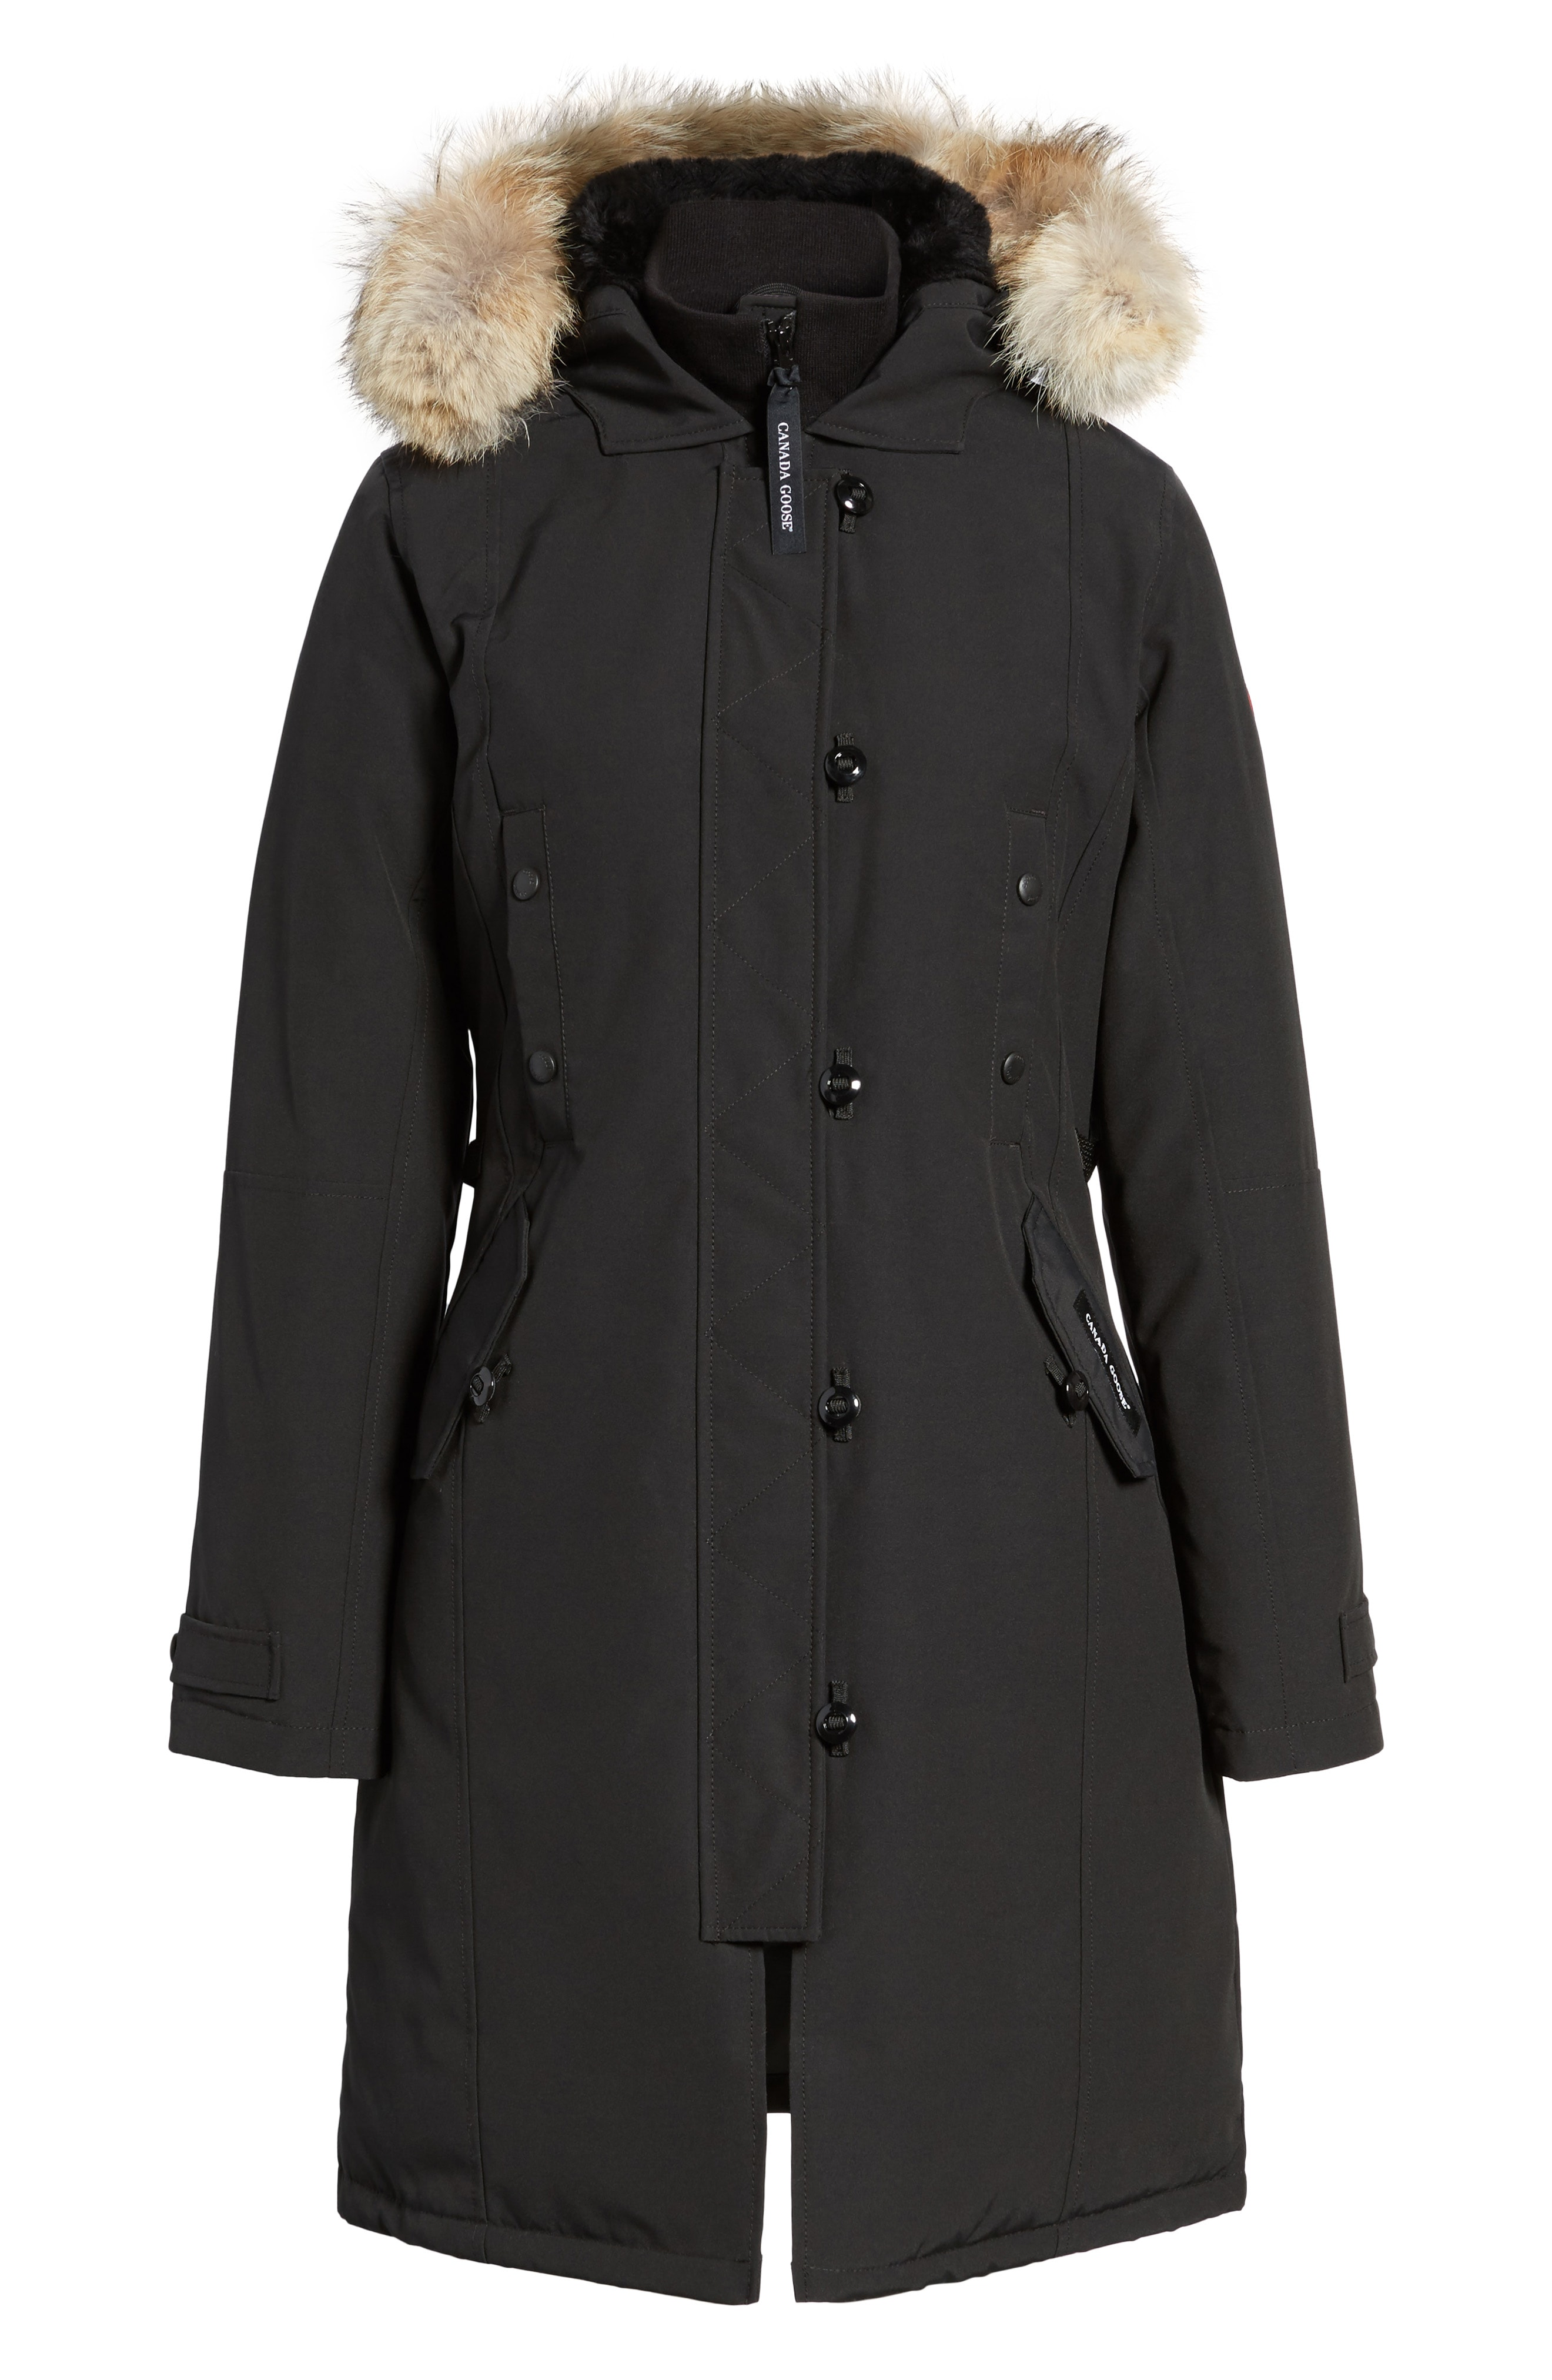 Black Parkas – a classic under the coats for autumn and winter